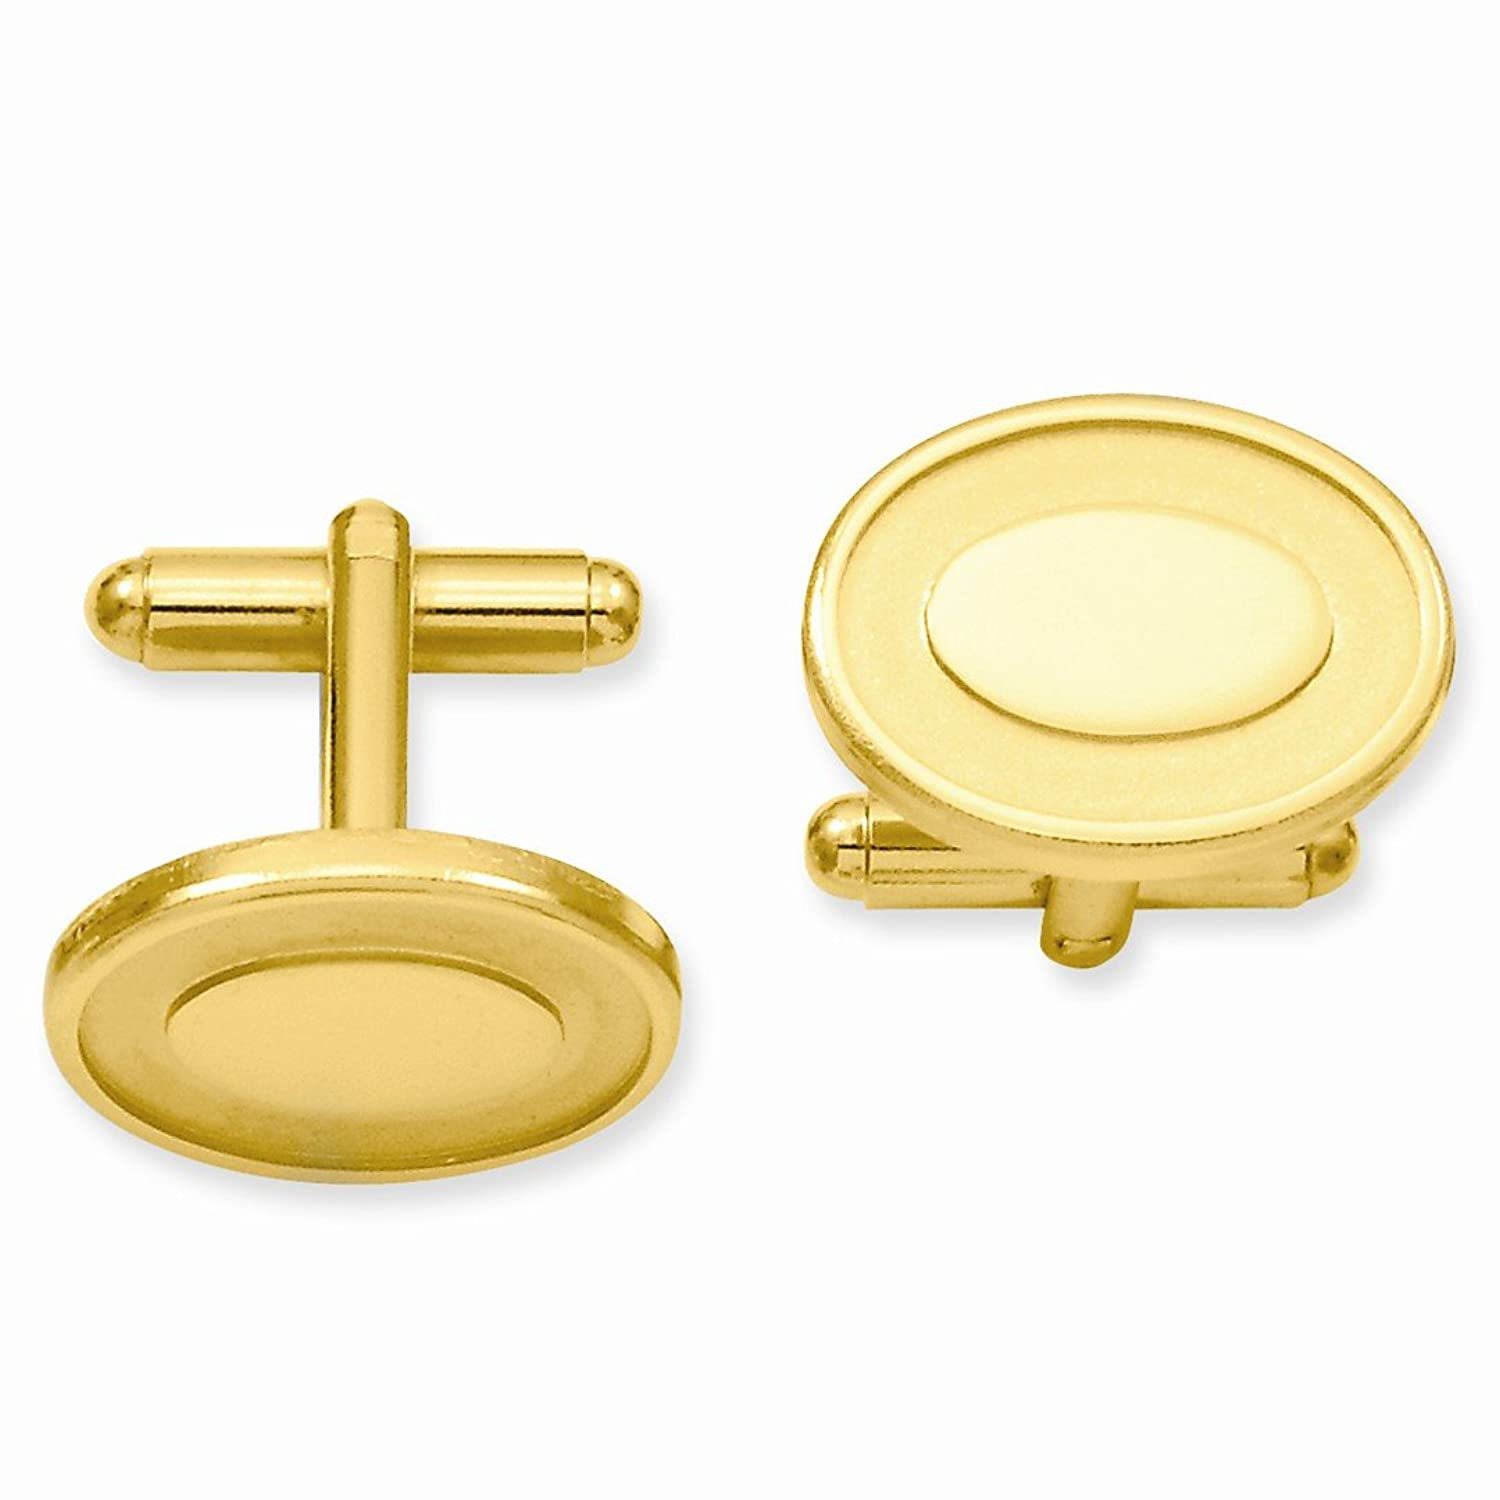 ICE CARATS Gold Plated Kelly Waters Oval Engraveable Area Cuff Links Mens Cufflinks Man Link Water Fashion Jewelry Dad Mens Gift Set